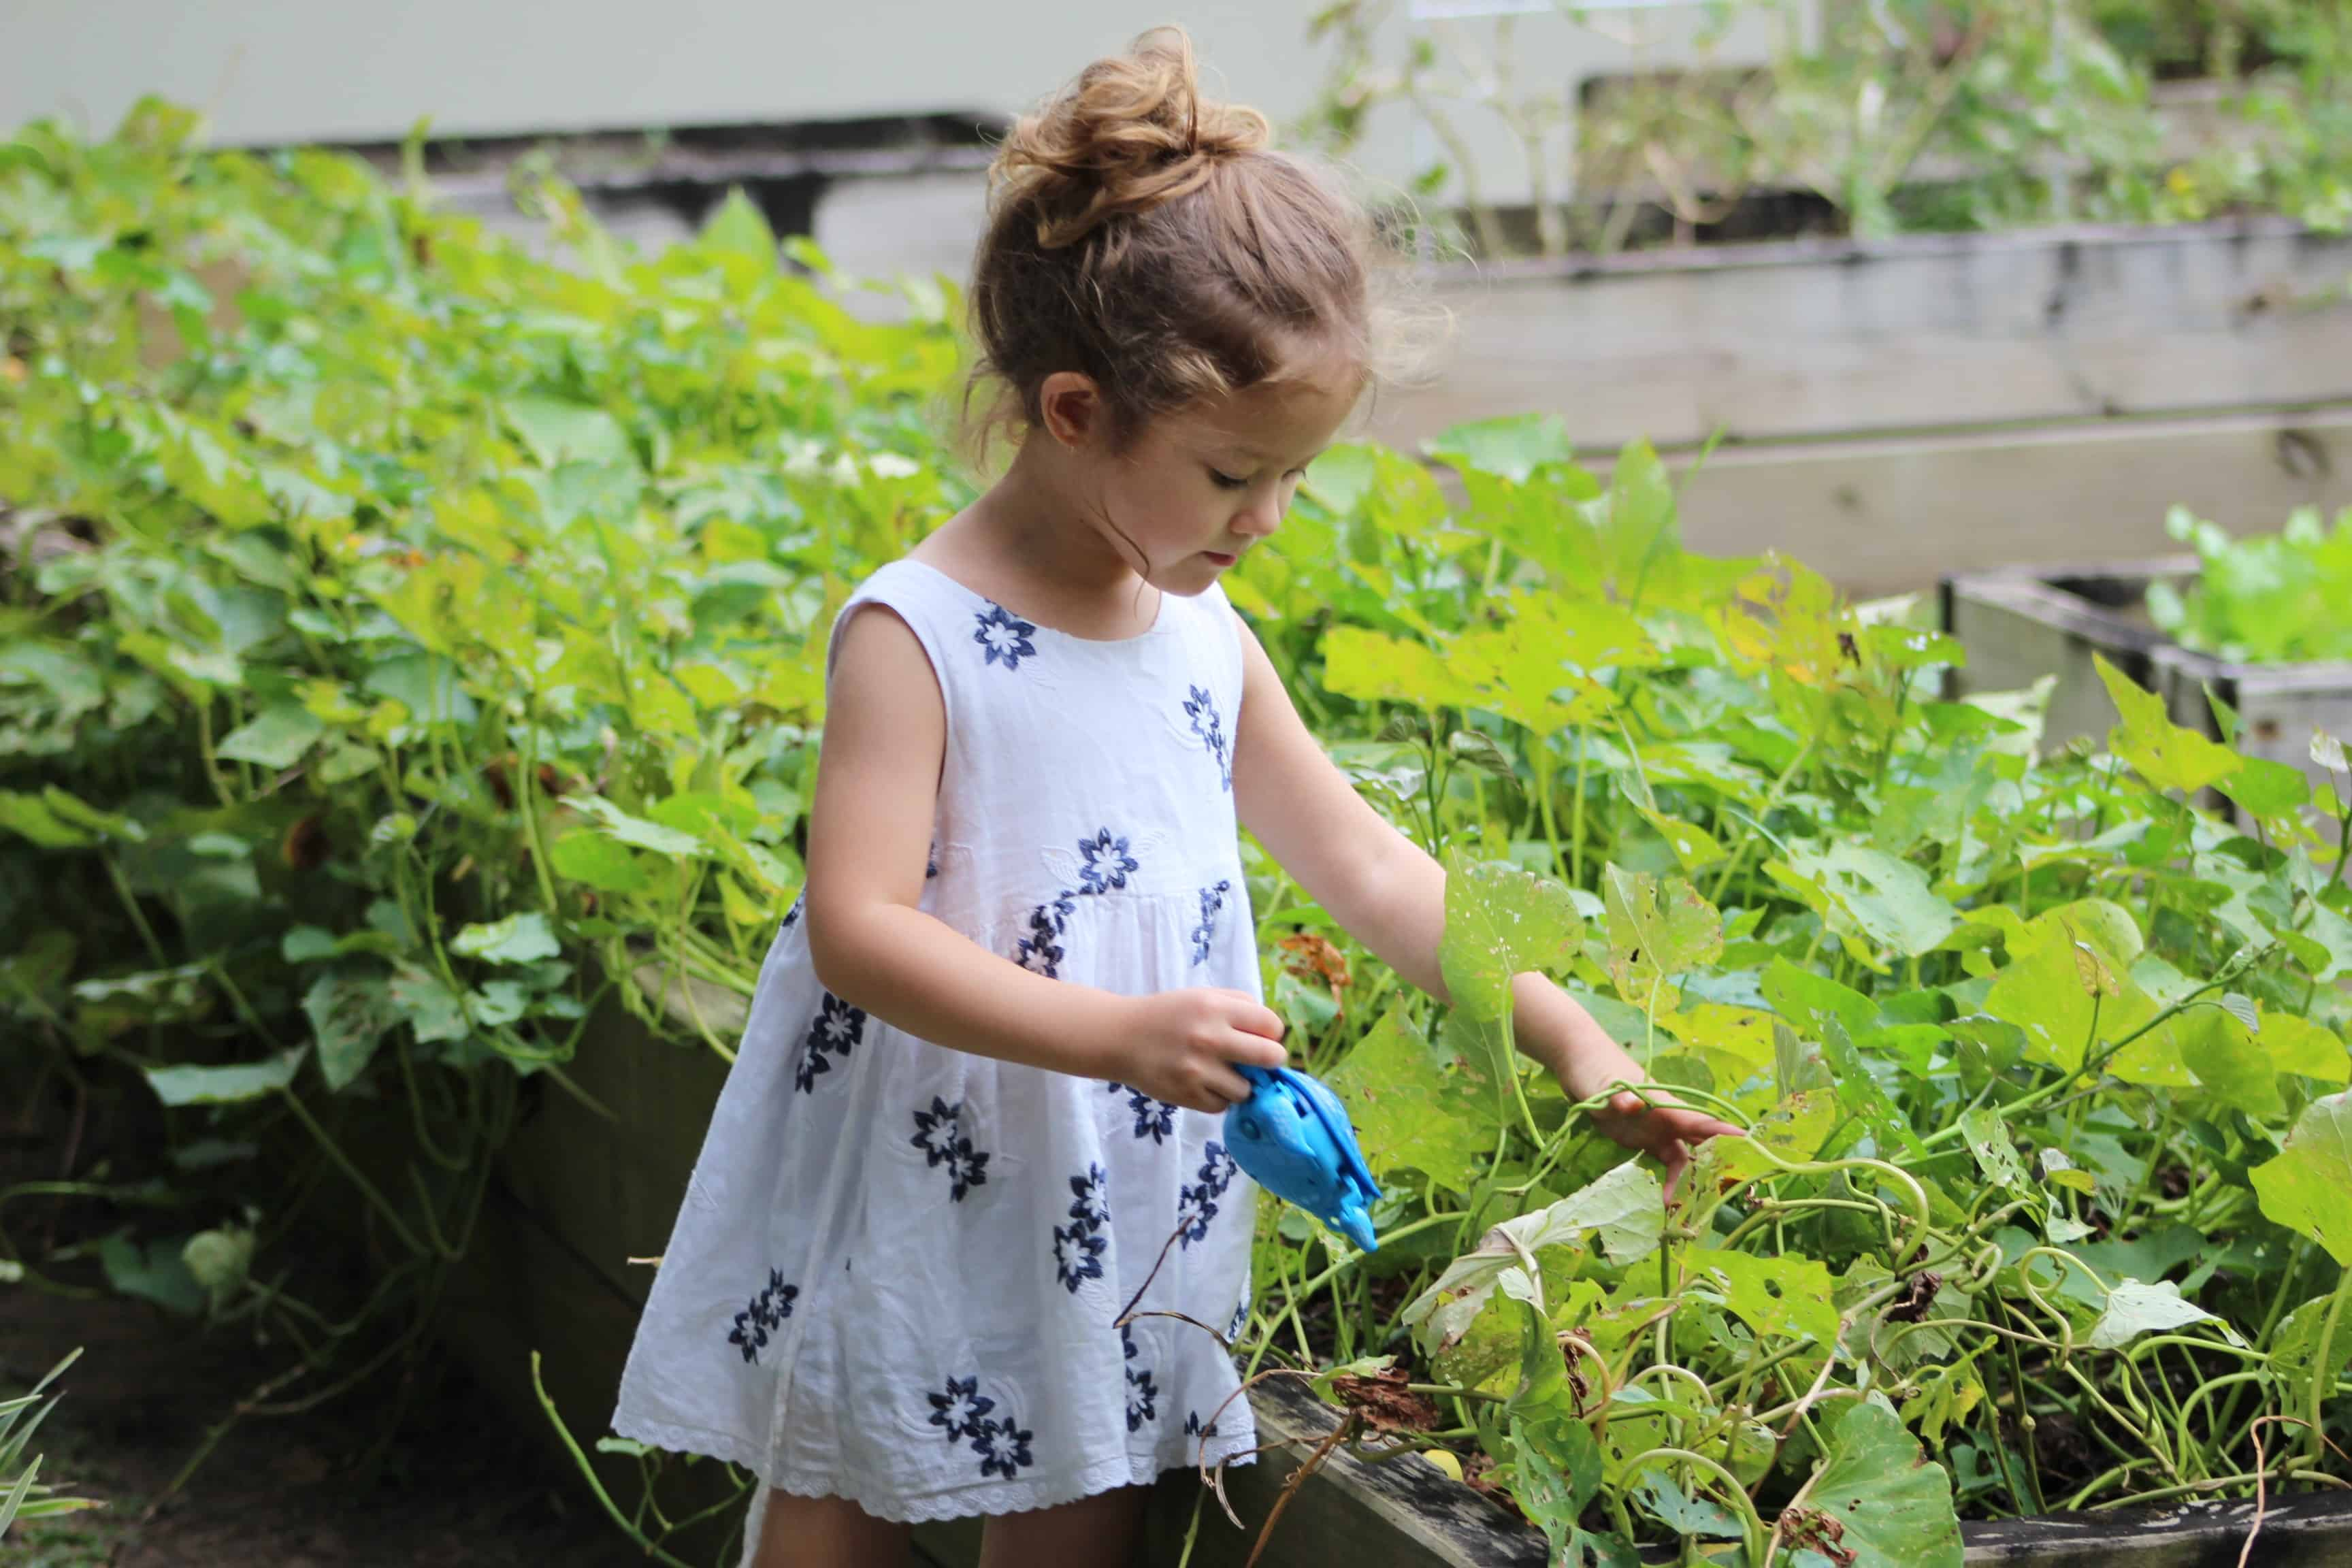 5 Best Plants For Your Kids